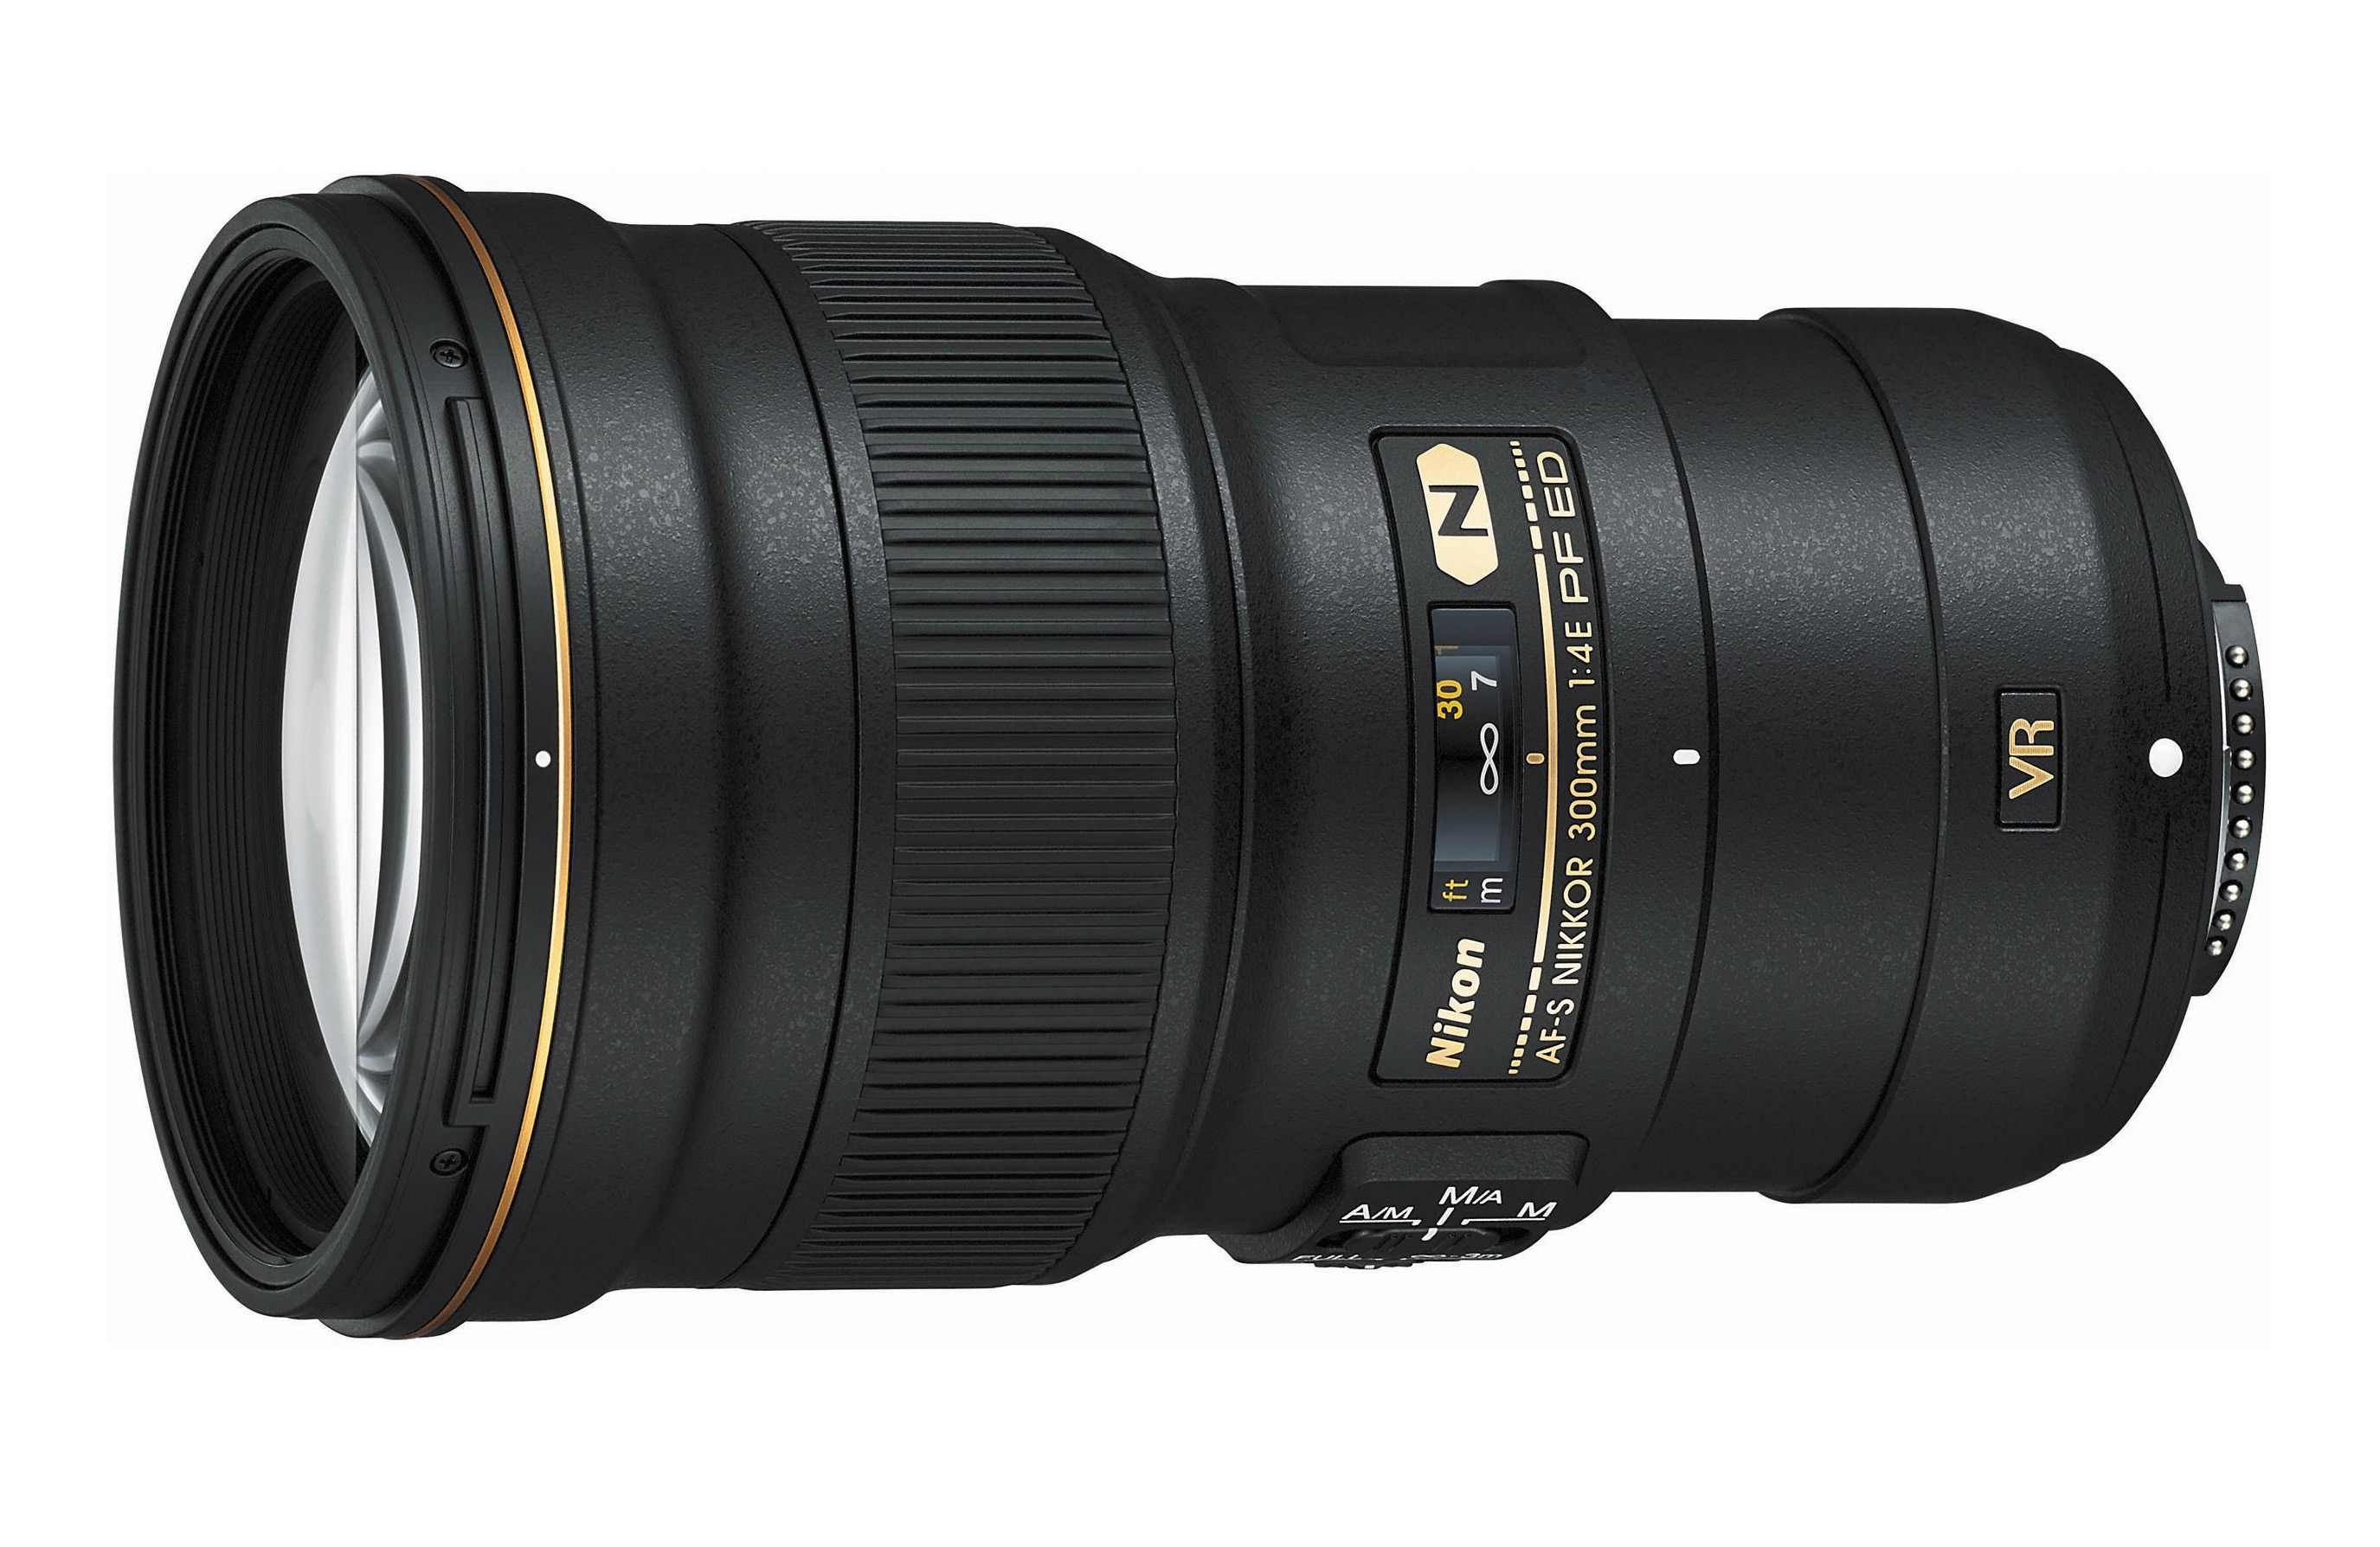 Nikon 300mm f/4E PF ED VR Review - Photography Life